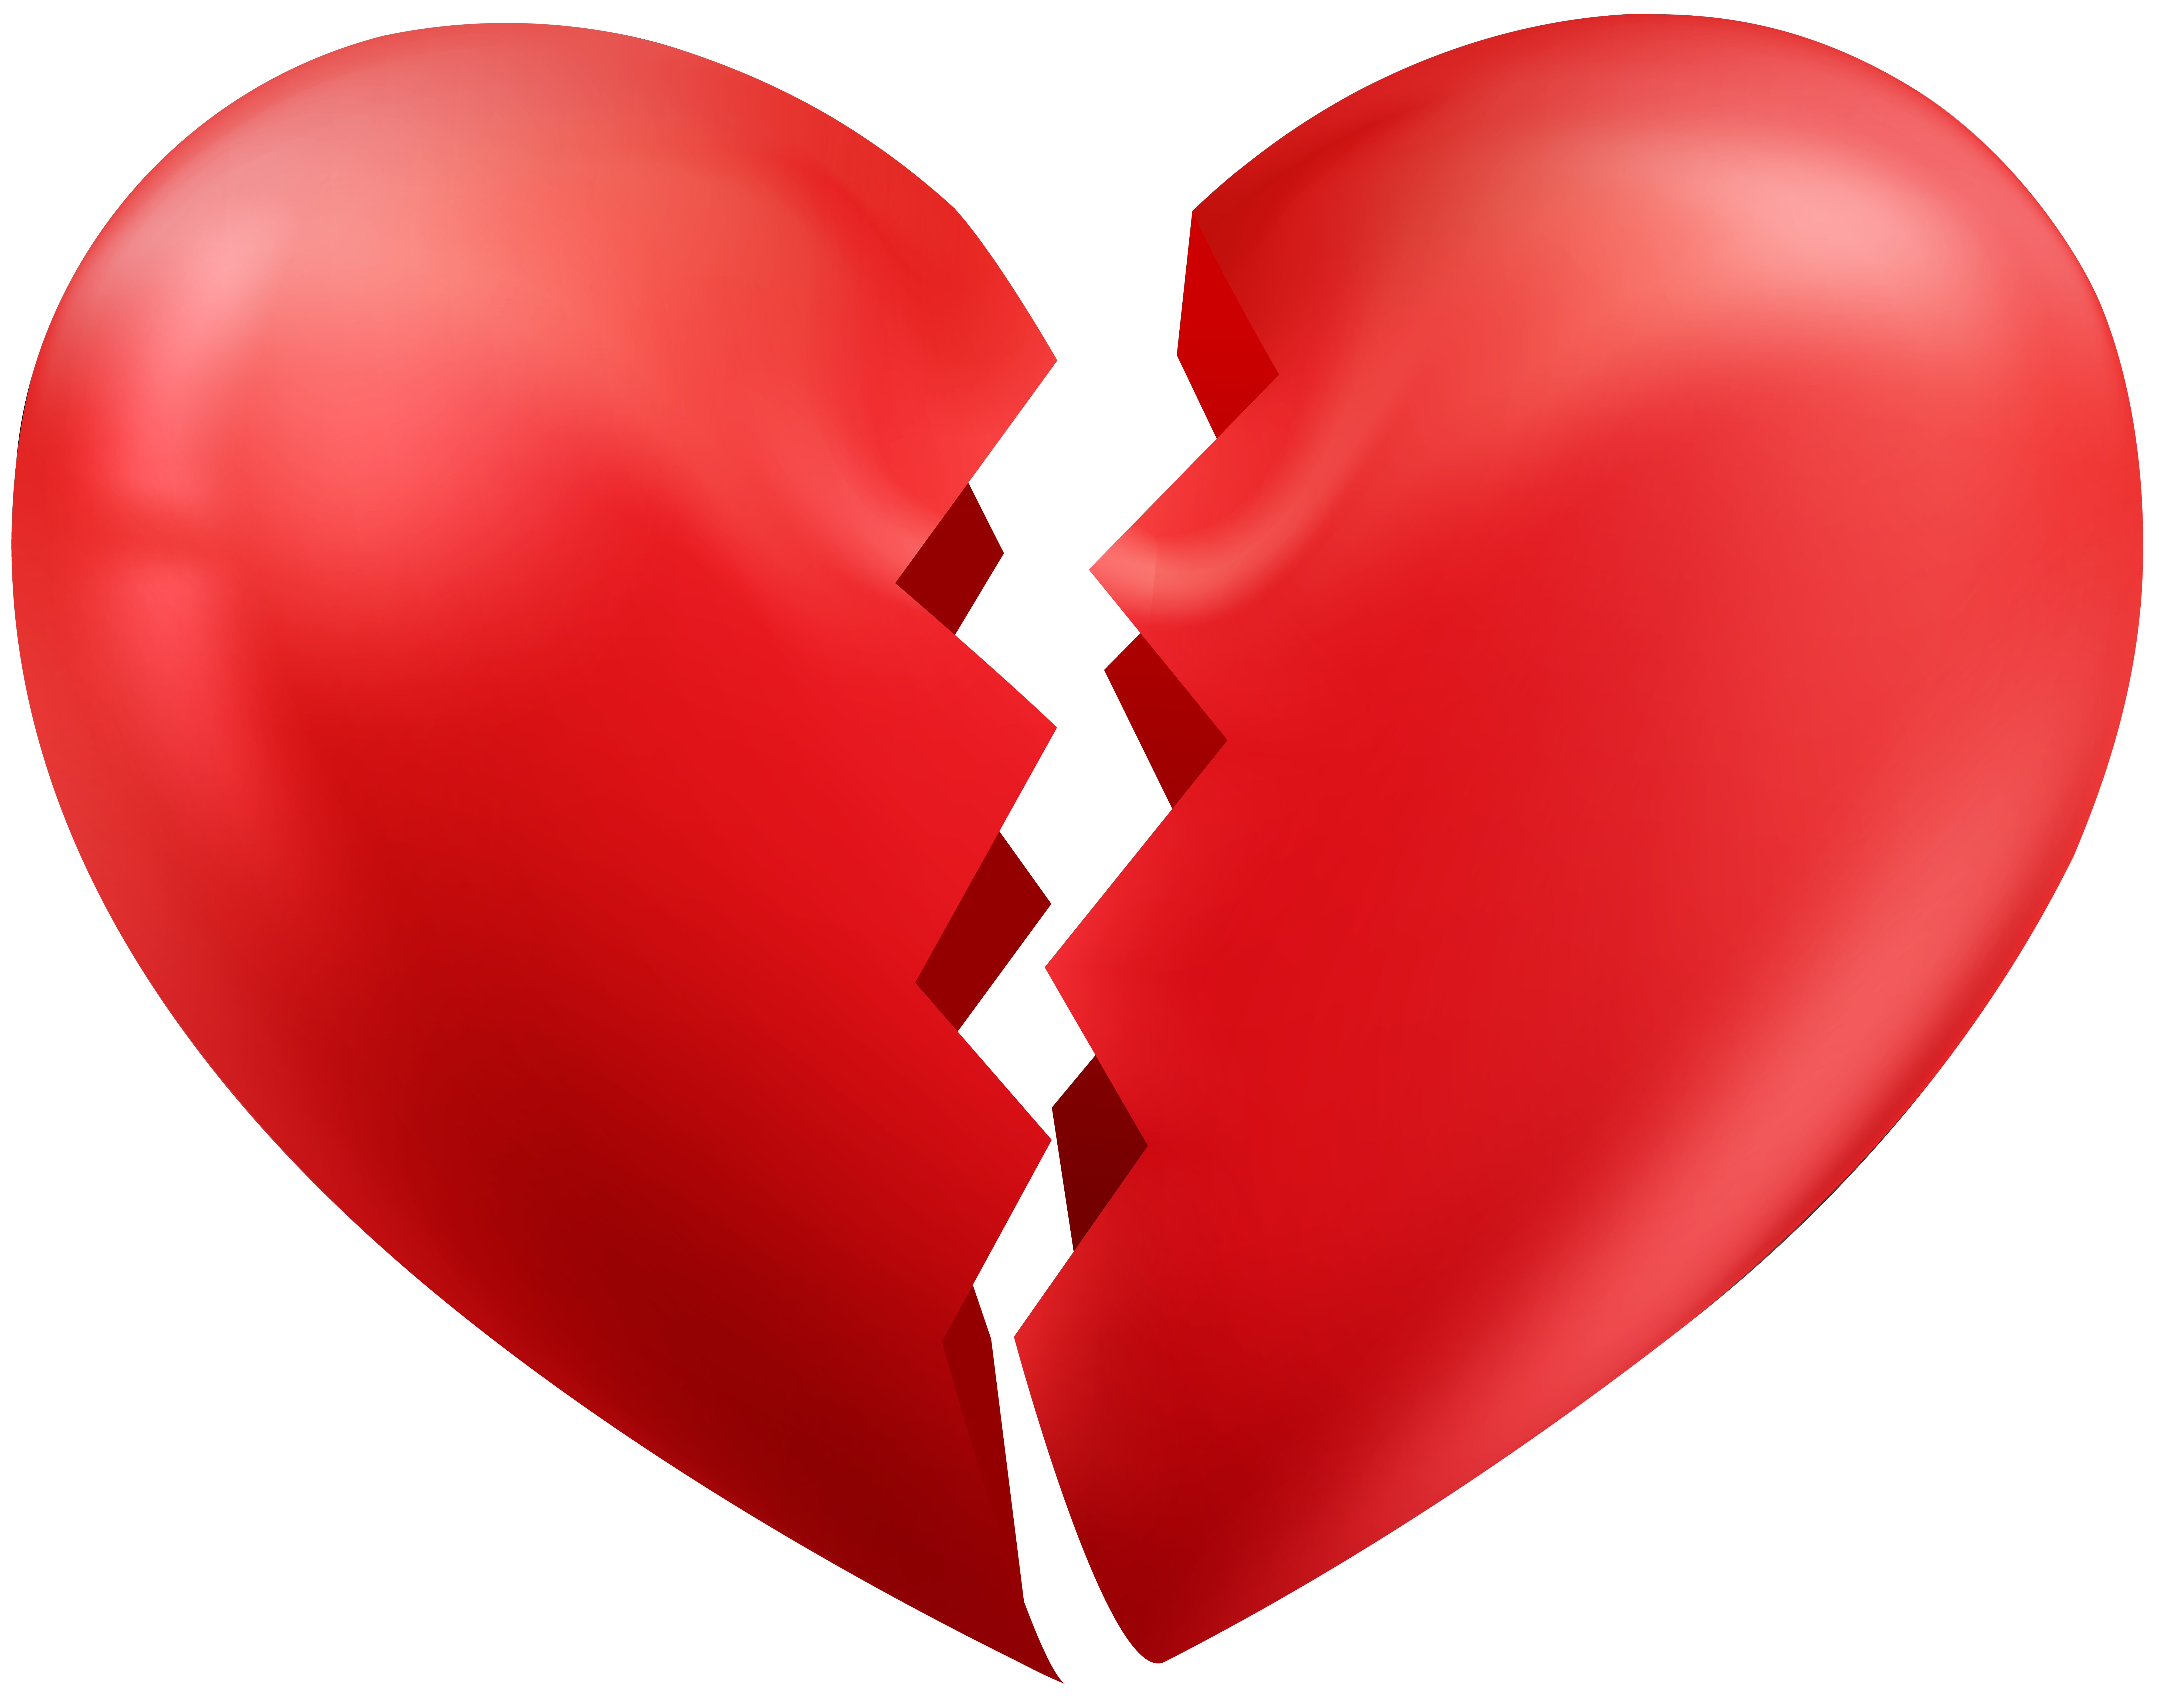 8000x6328 Collection Of Broken Heart Clipart Transparent High Quality